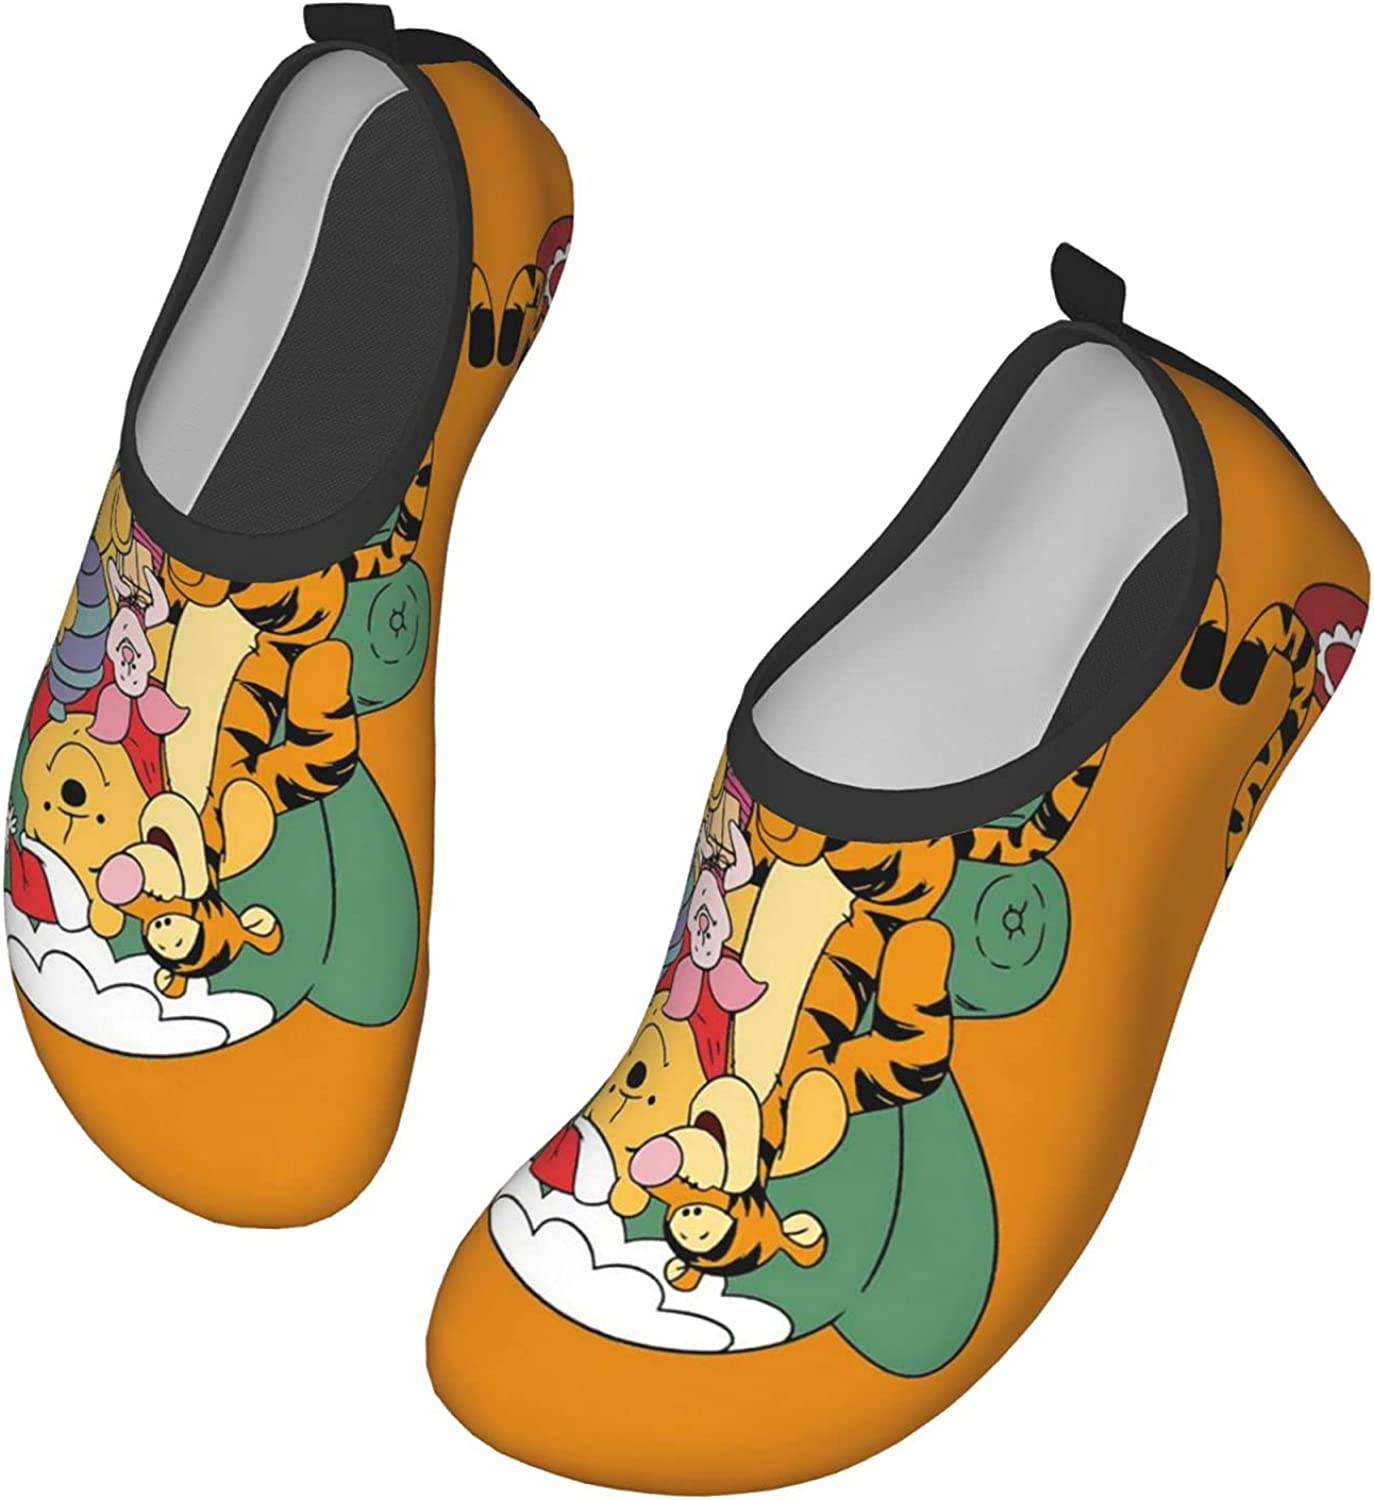 Mawon Winnie The Pooh Water Shoes Men's Women's Swim Shoes Barefoot Beach Pool Shoes Quick-Dry Yoga for Surf Swim Water Sport